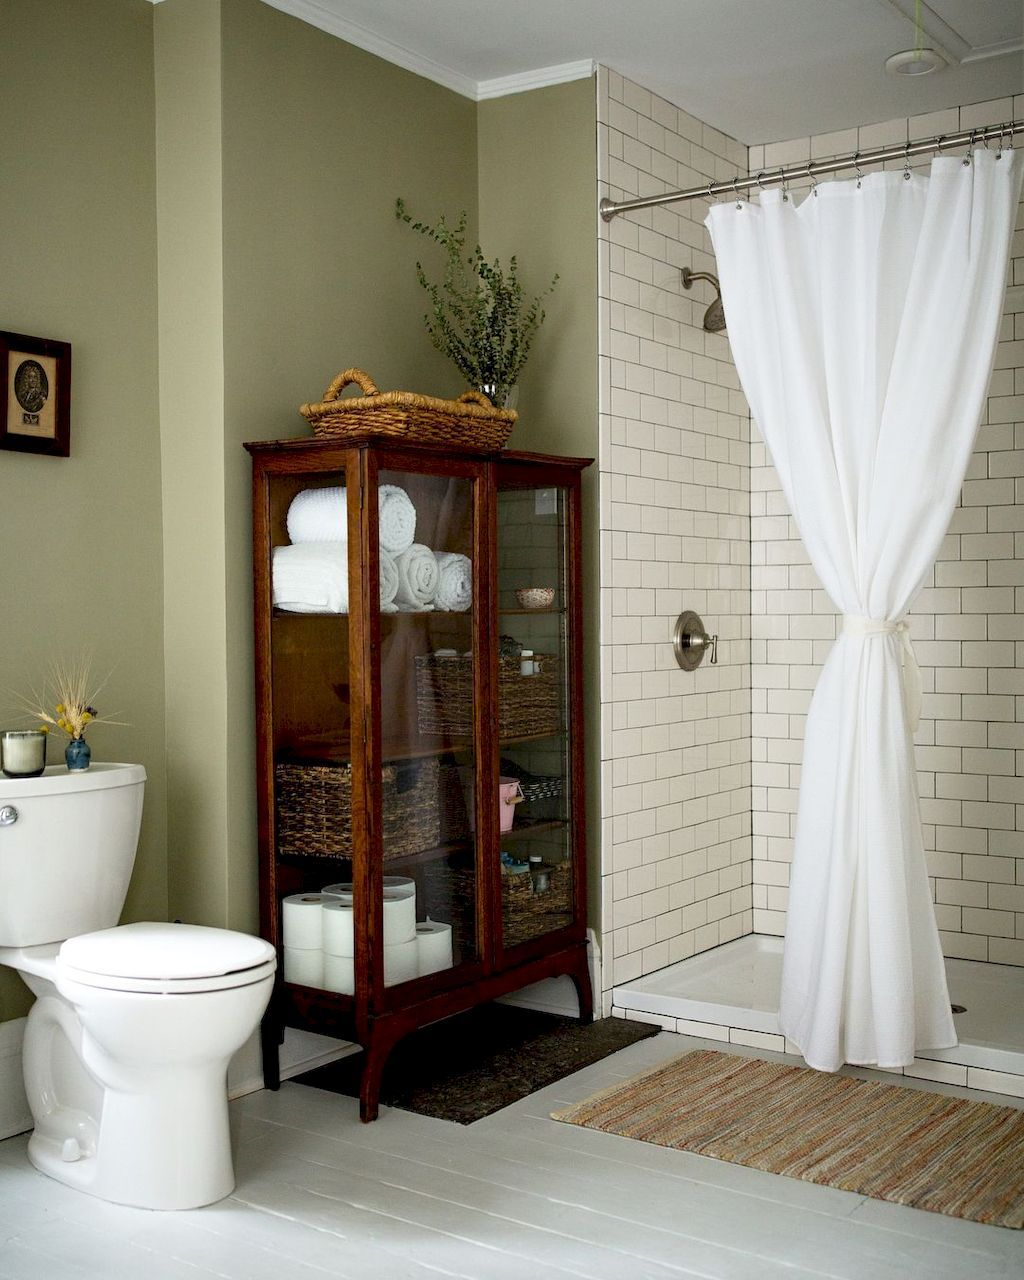 Gorgeous High Ten Suggestions For Shopping For Bathroom Cabinets House Interior Home Bathrooms Remodel